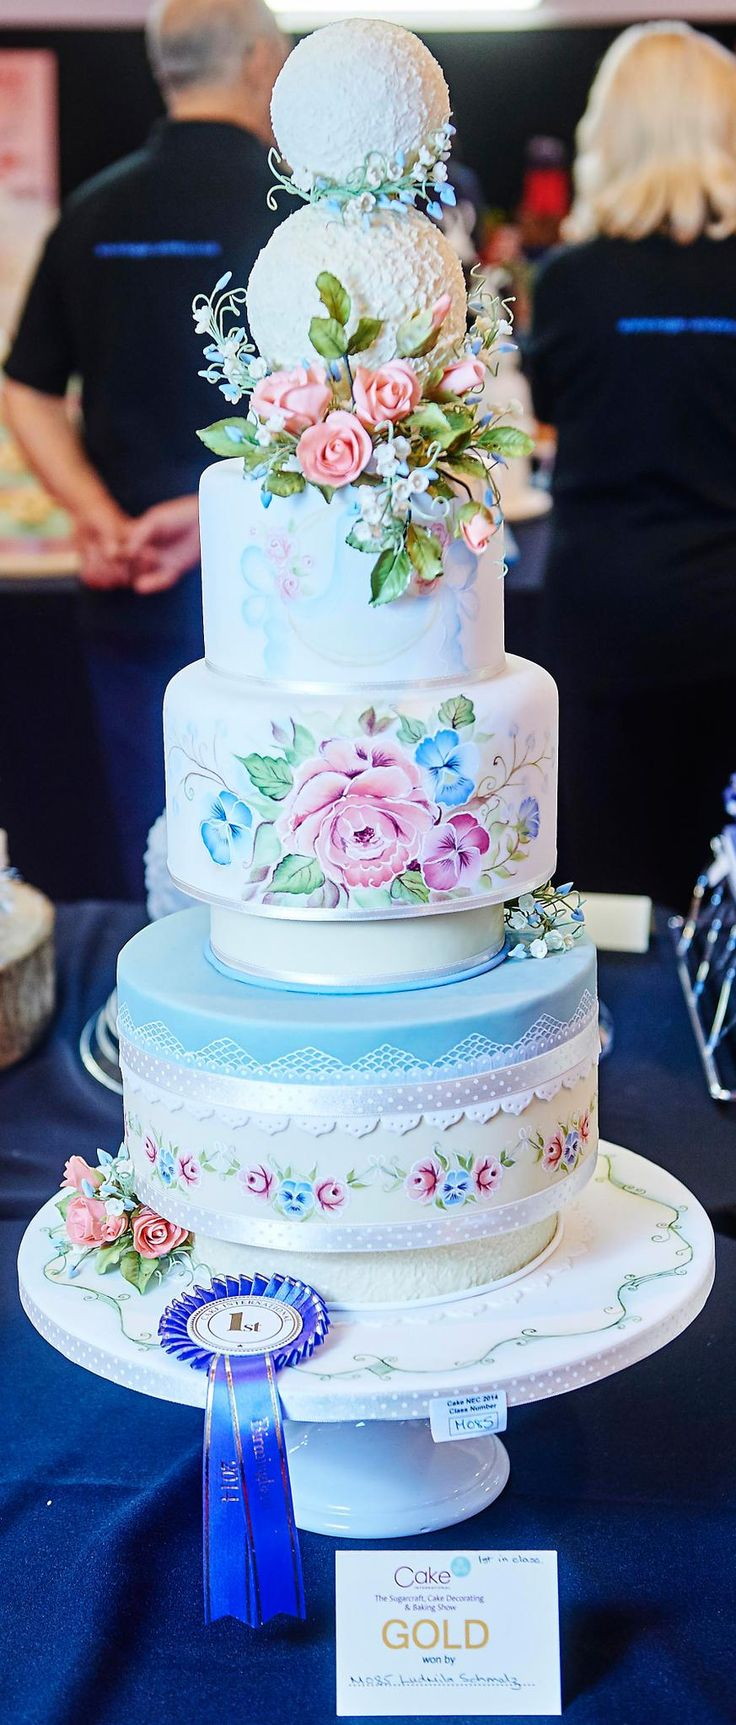 Keep your eyes peeled! We're working on Birmingham Cake Competitions as we speak, information will be live very soon!